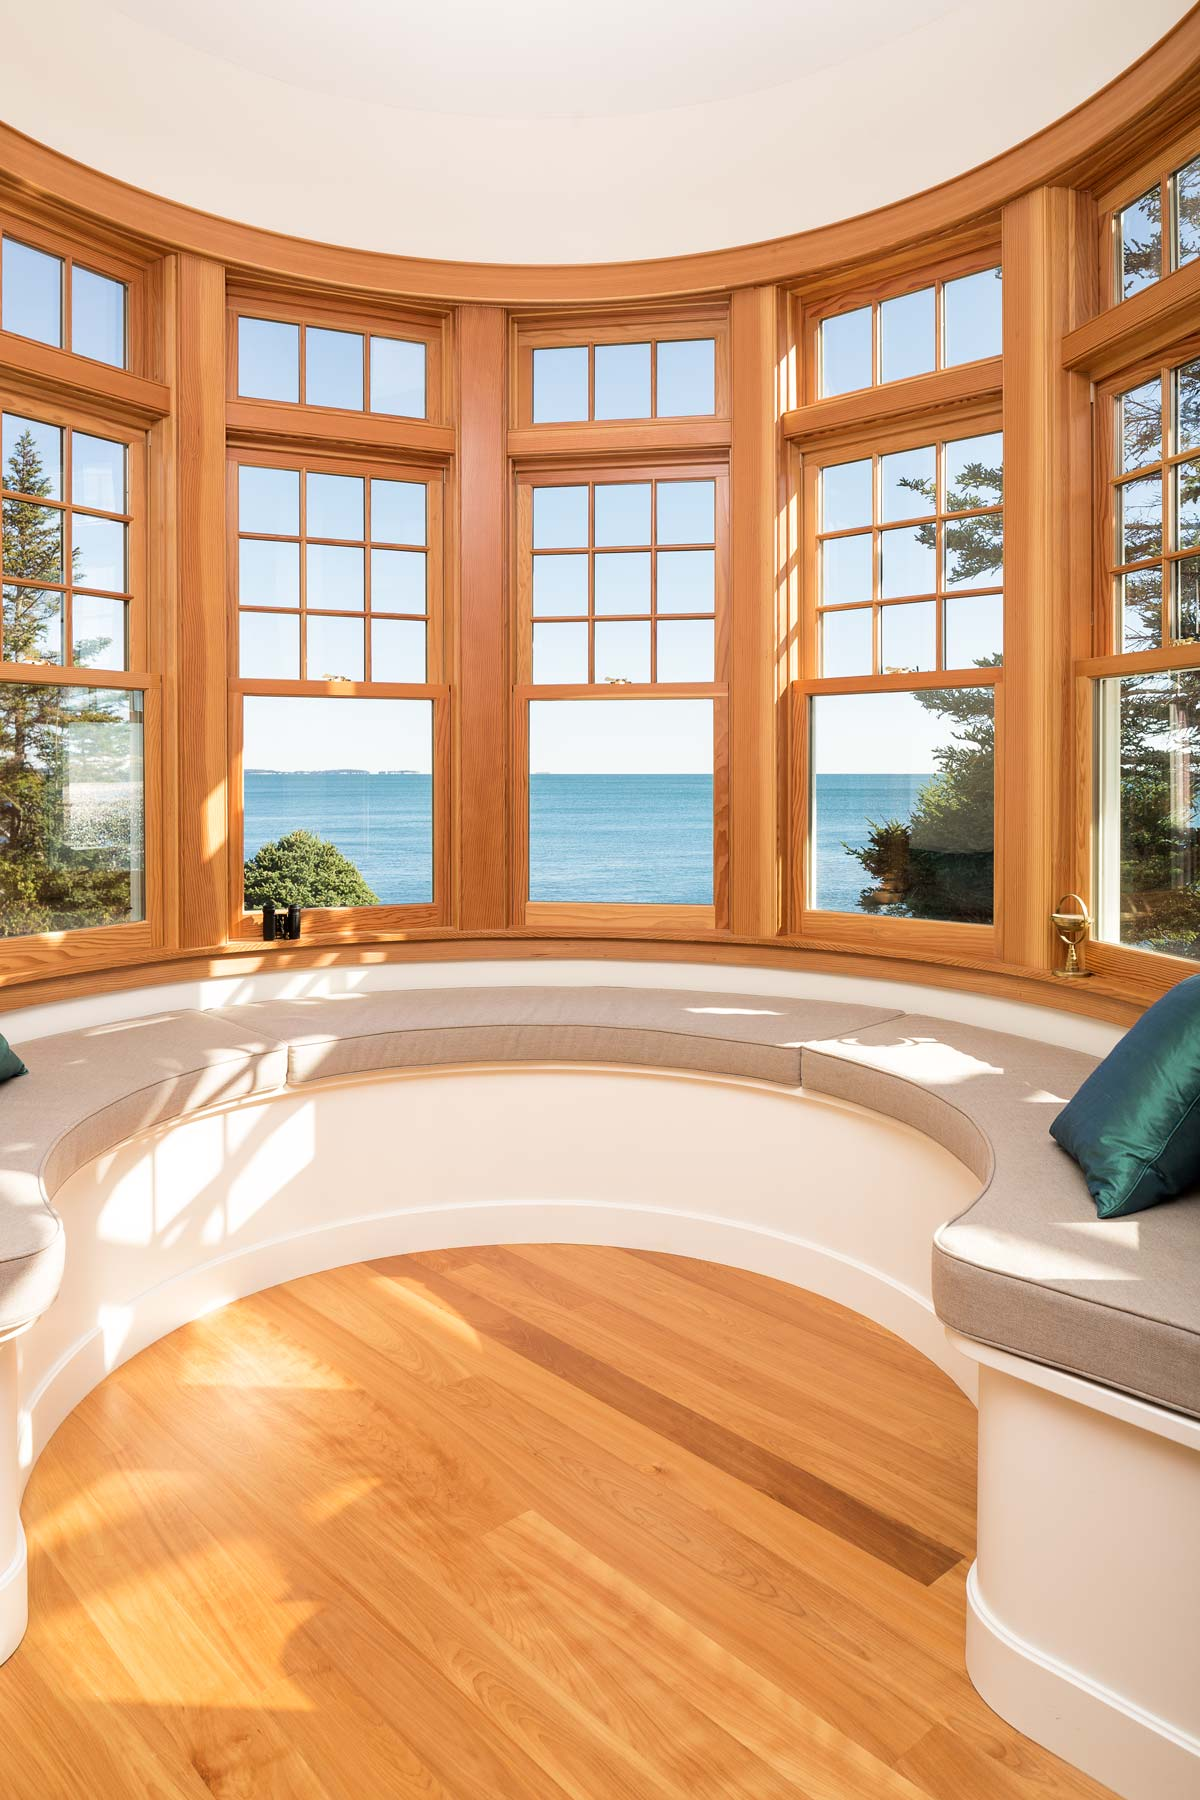 """Steve Smith's son, Justin, served as Project Architect on the home, completing the construction drawings and masterfully accommodating Dianne and Van's call for """"a view of the ocean in every room."""""""